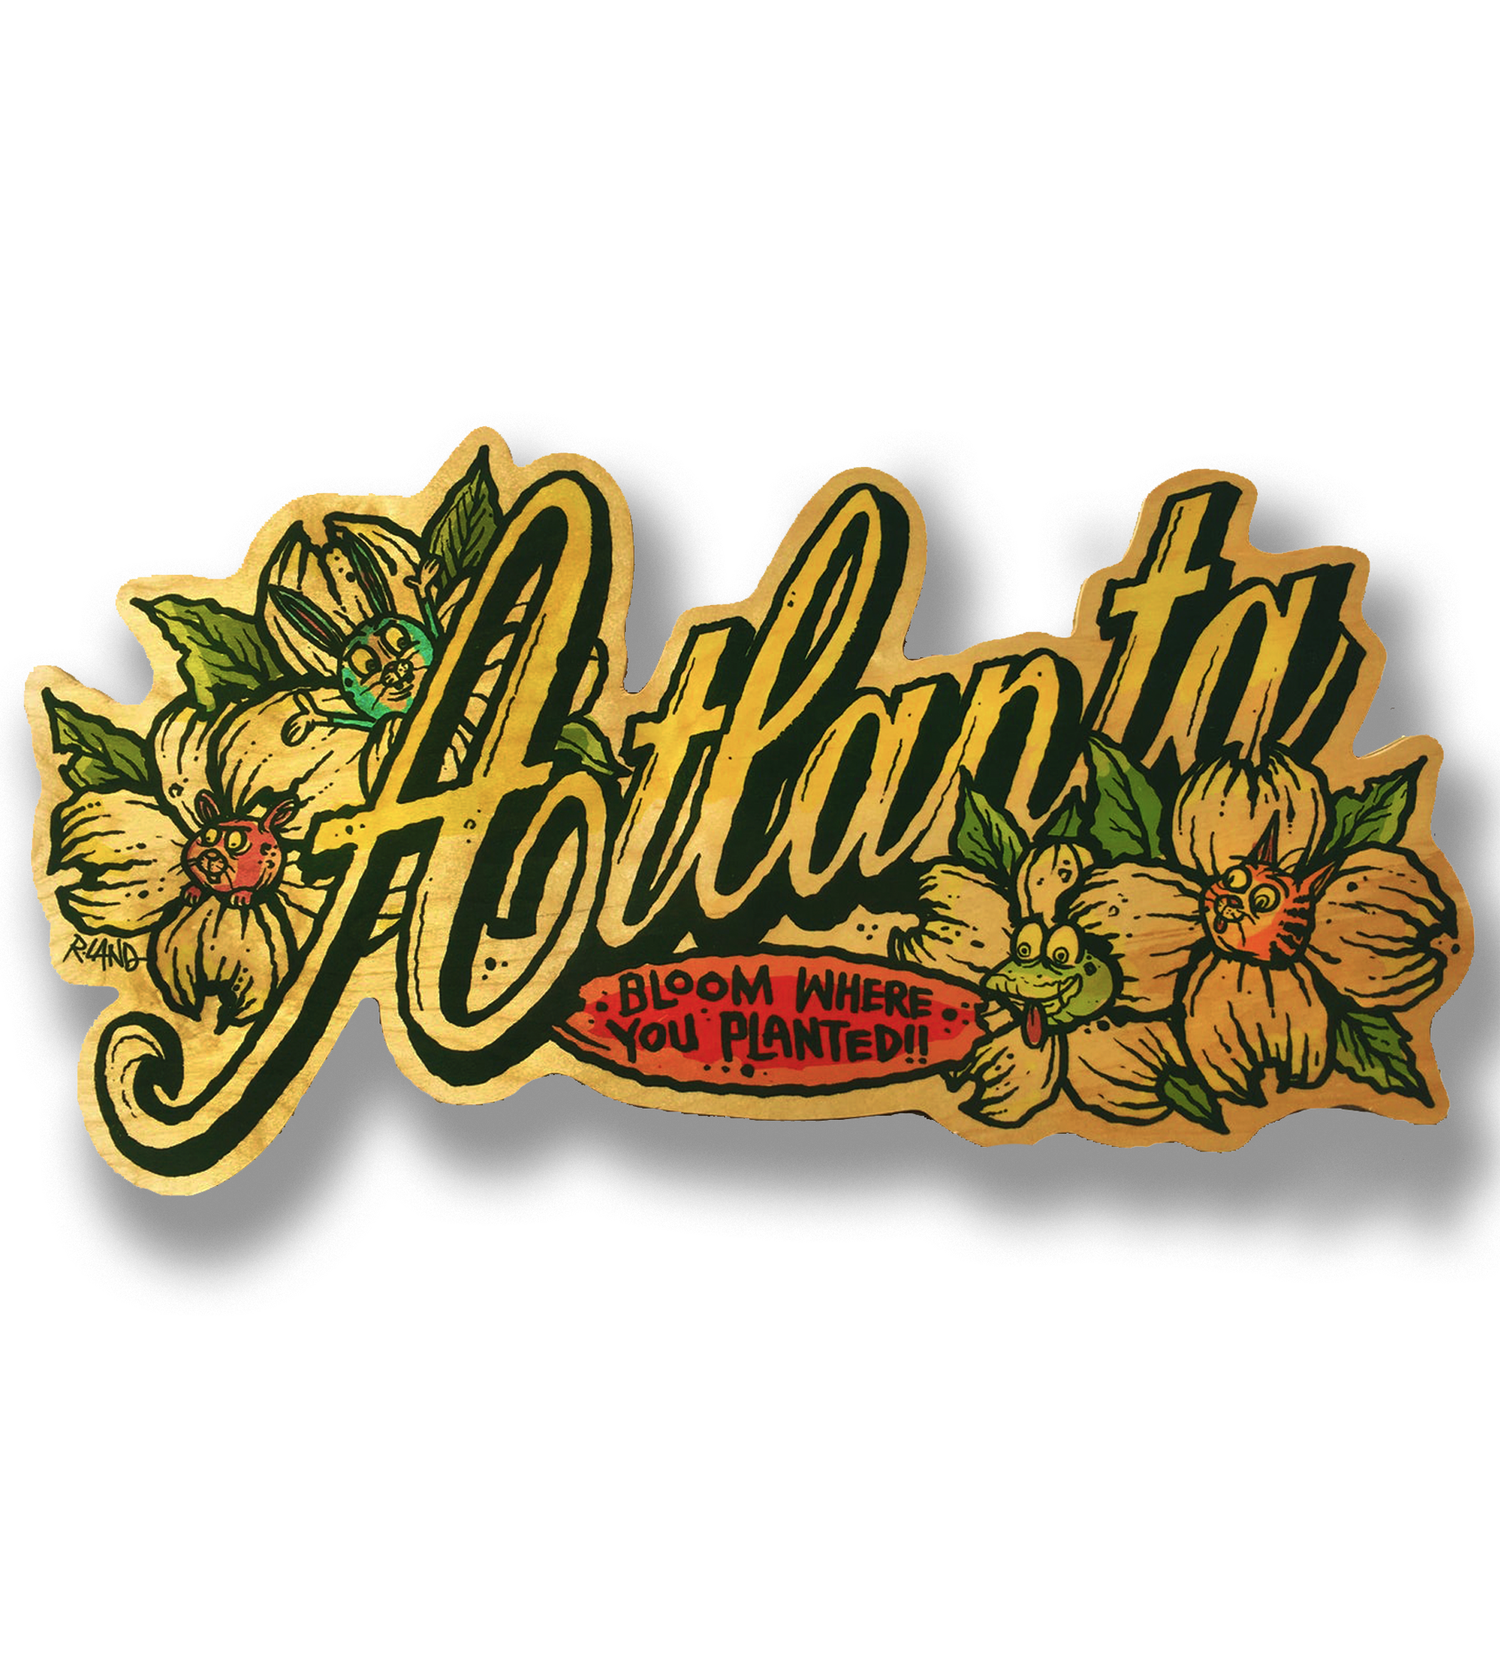 "Image of Jumbo Atlanta ""Bloom where you planted""  print on wood"